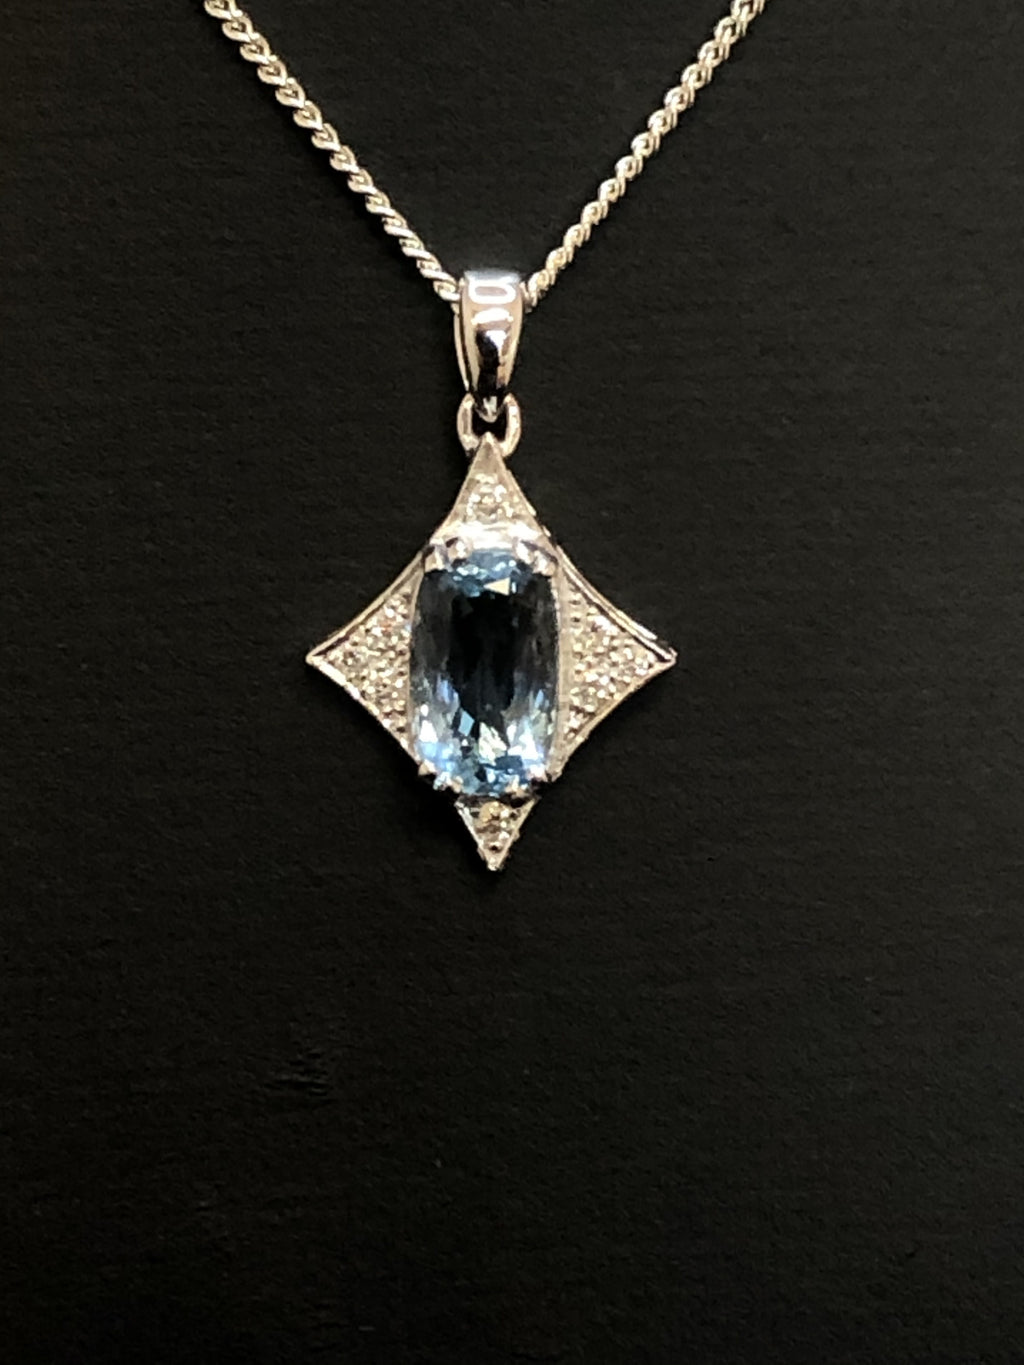 A close up front view of a large cushion cut aquamarine set in a clightly concave diamond shaped pendant, accented with small diamonds